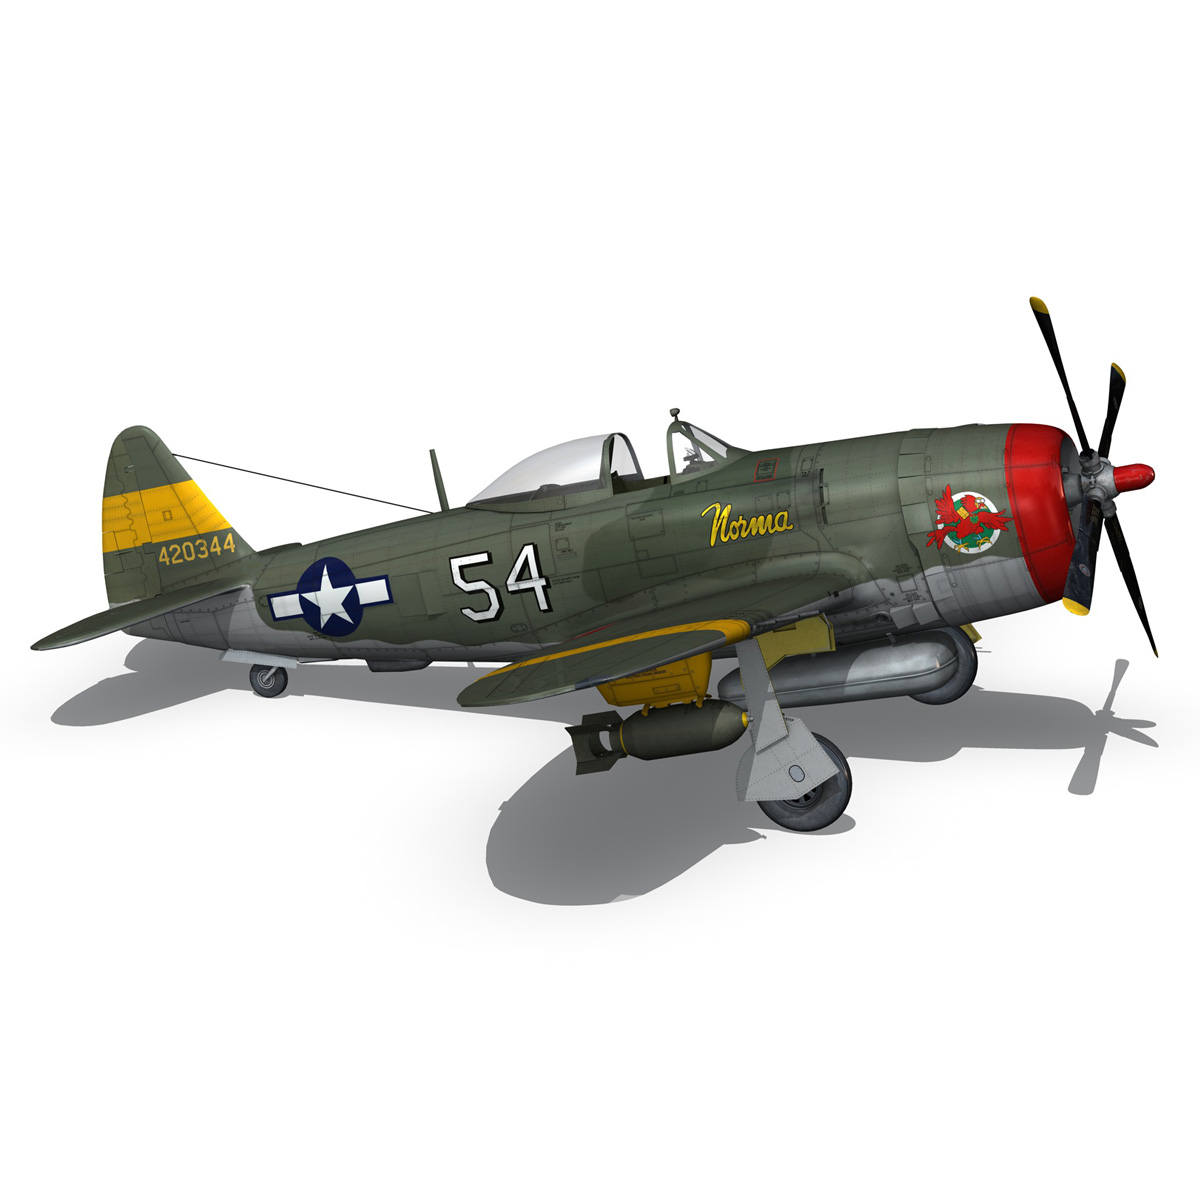 republic p-47d thunderbolt – little bunny 3d model fbx c4d lwo obj 274232